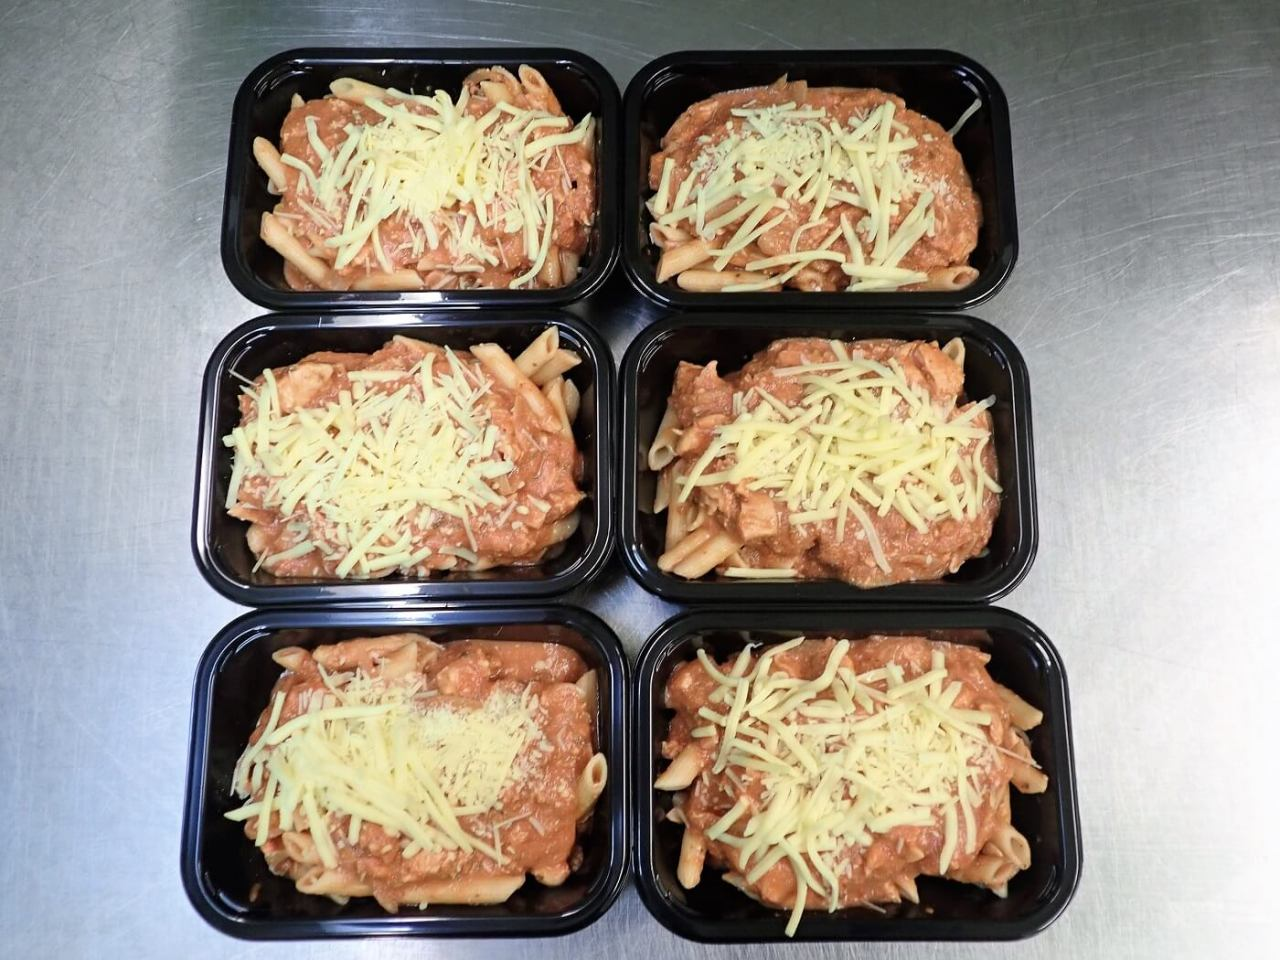 Six Chicken Bacon Pasta ready-meals in packaging trays